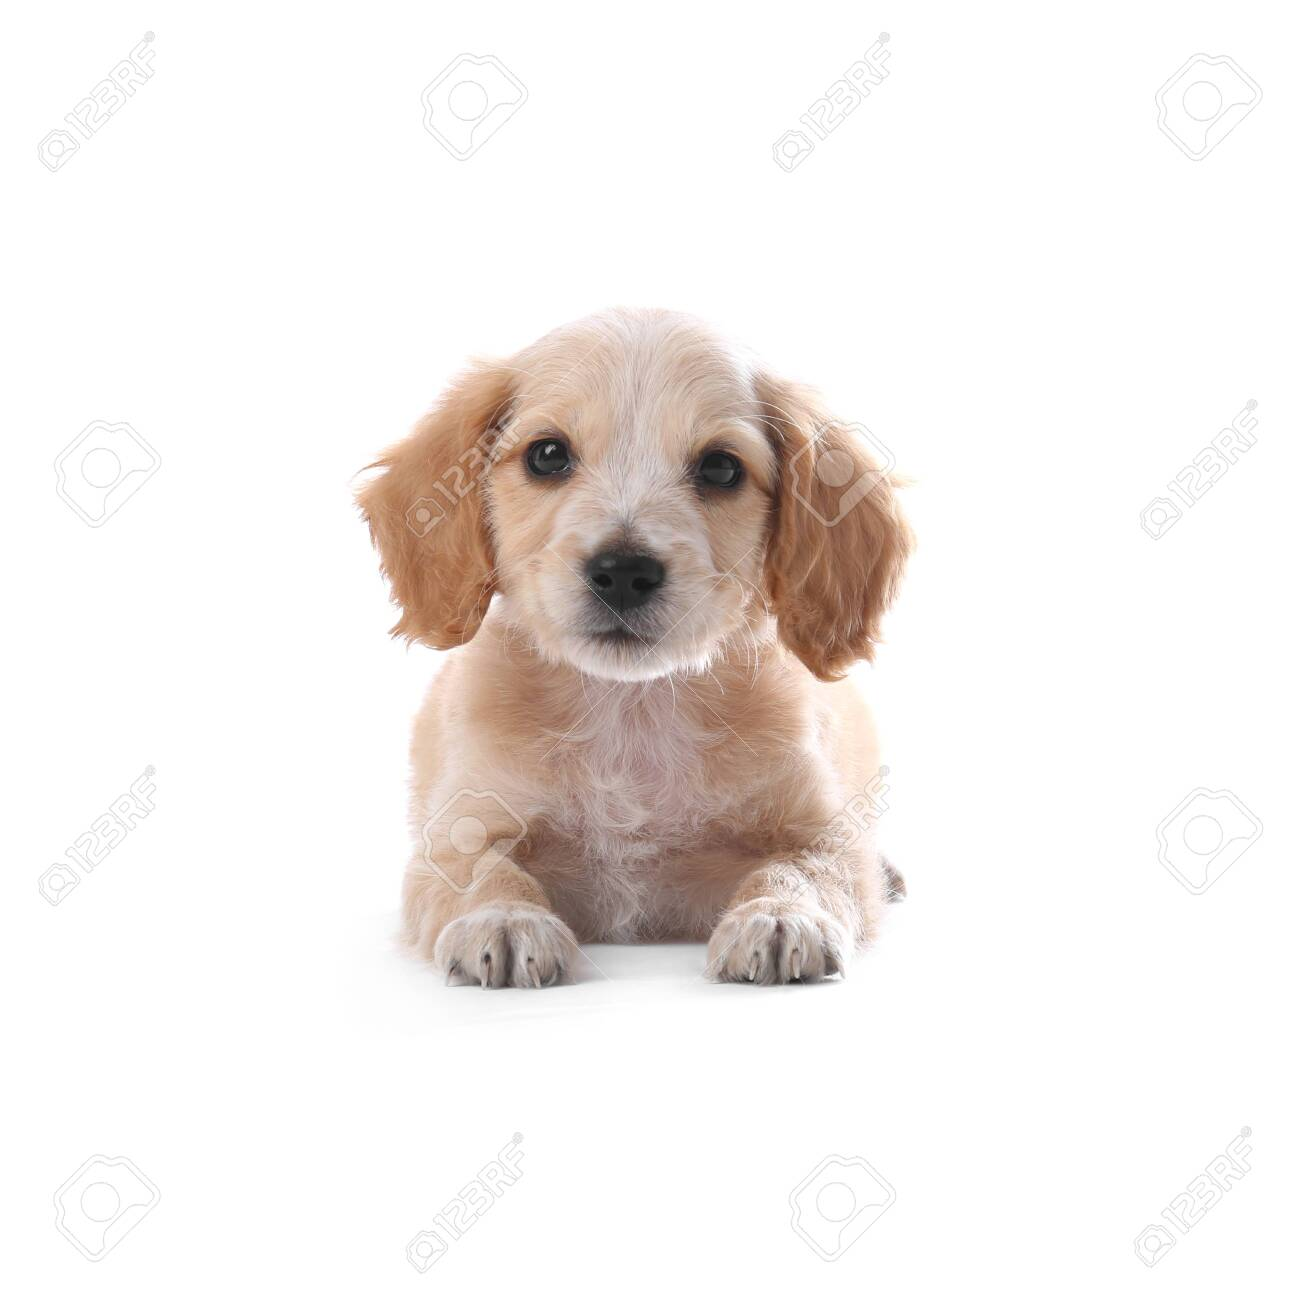 Cute English Cocker Spaniel Puppy On White Background Stock Photo Picture And Royalty Free Image Image 133227256